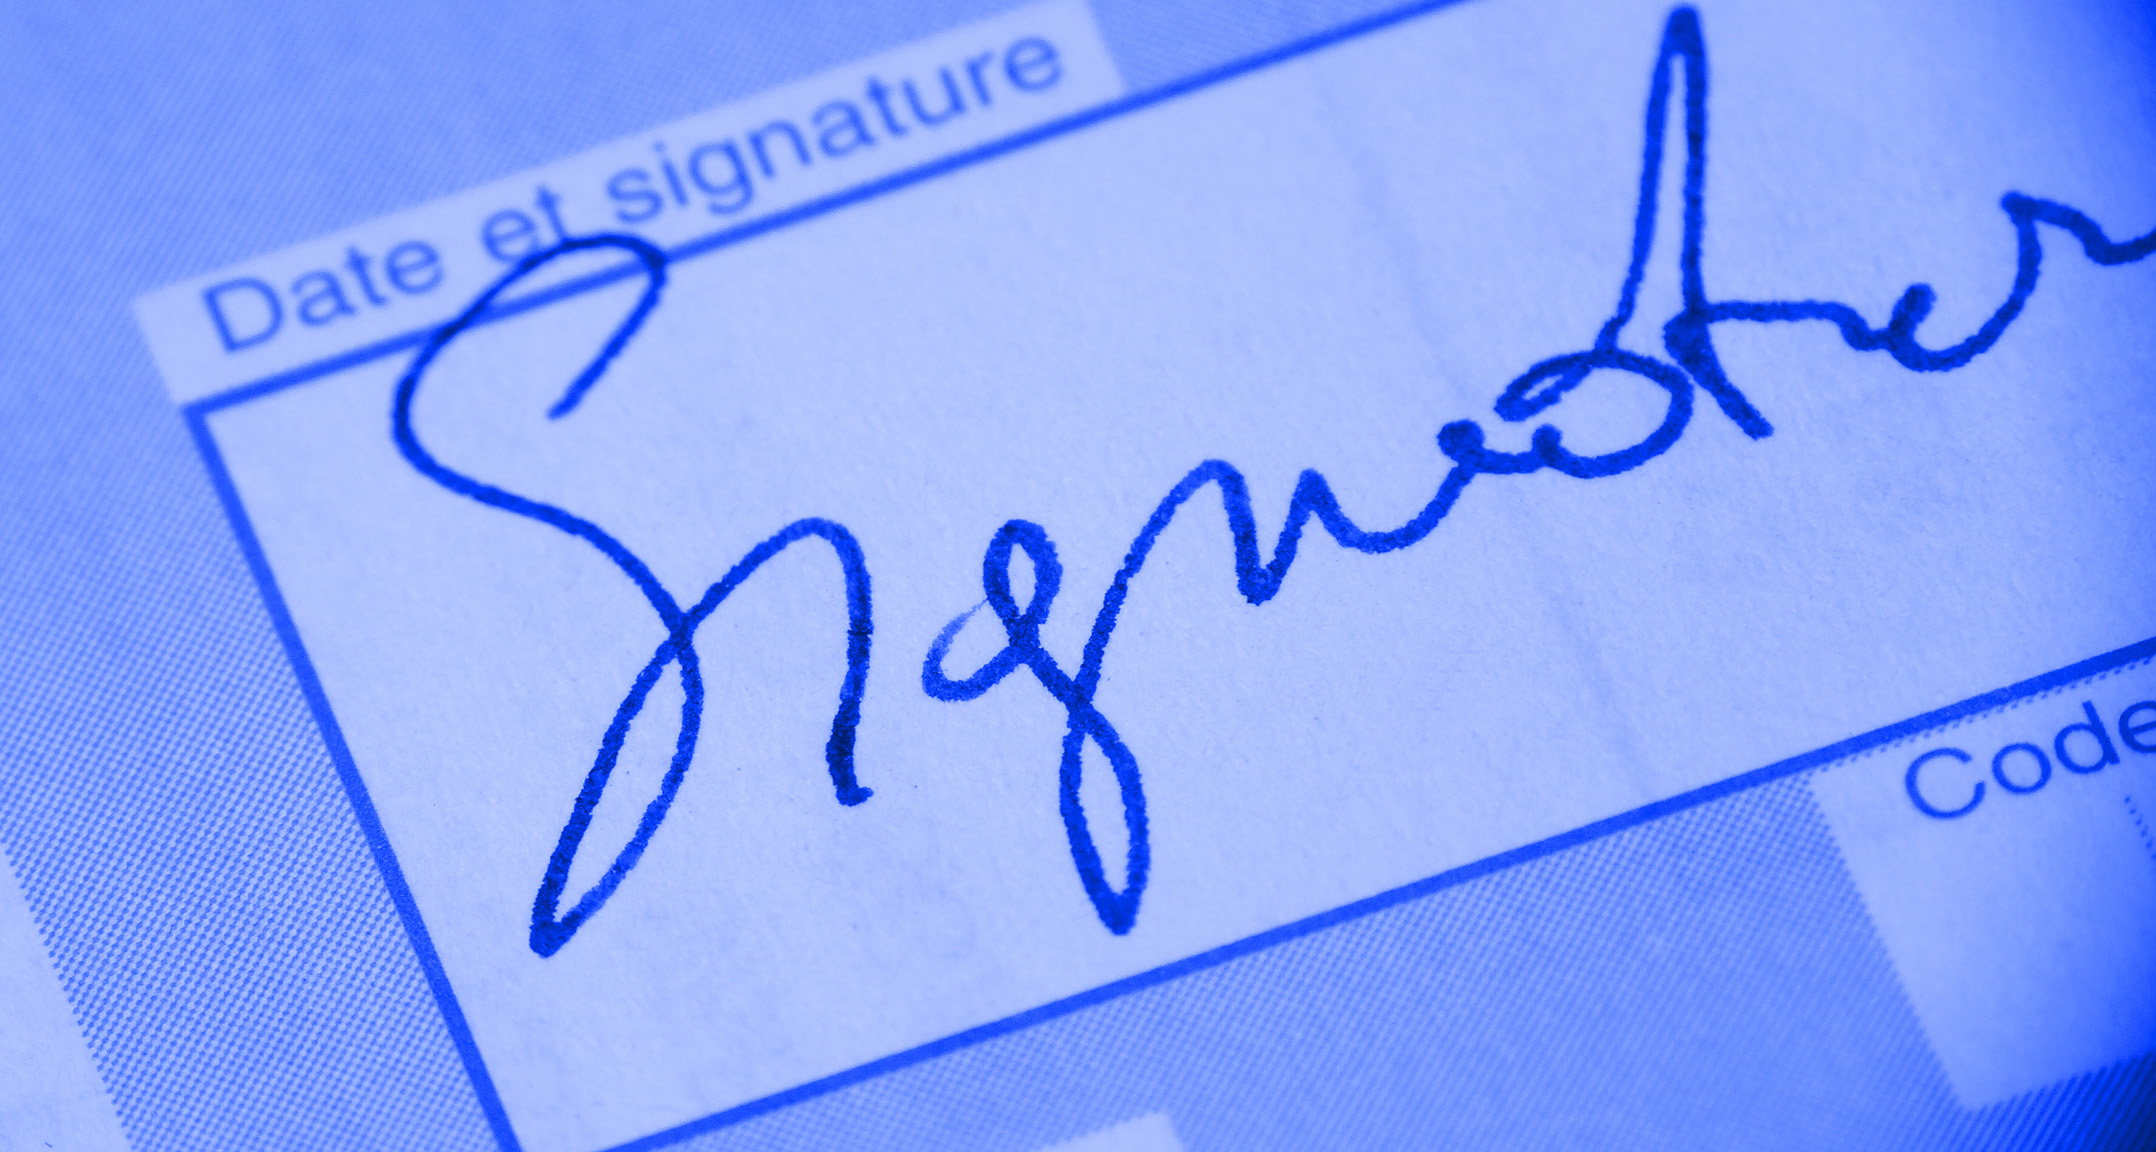 electronic signature technology essay